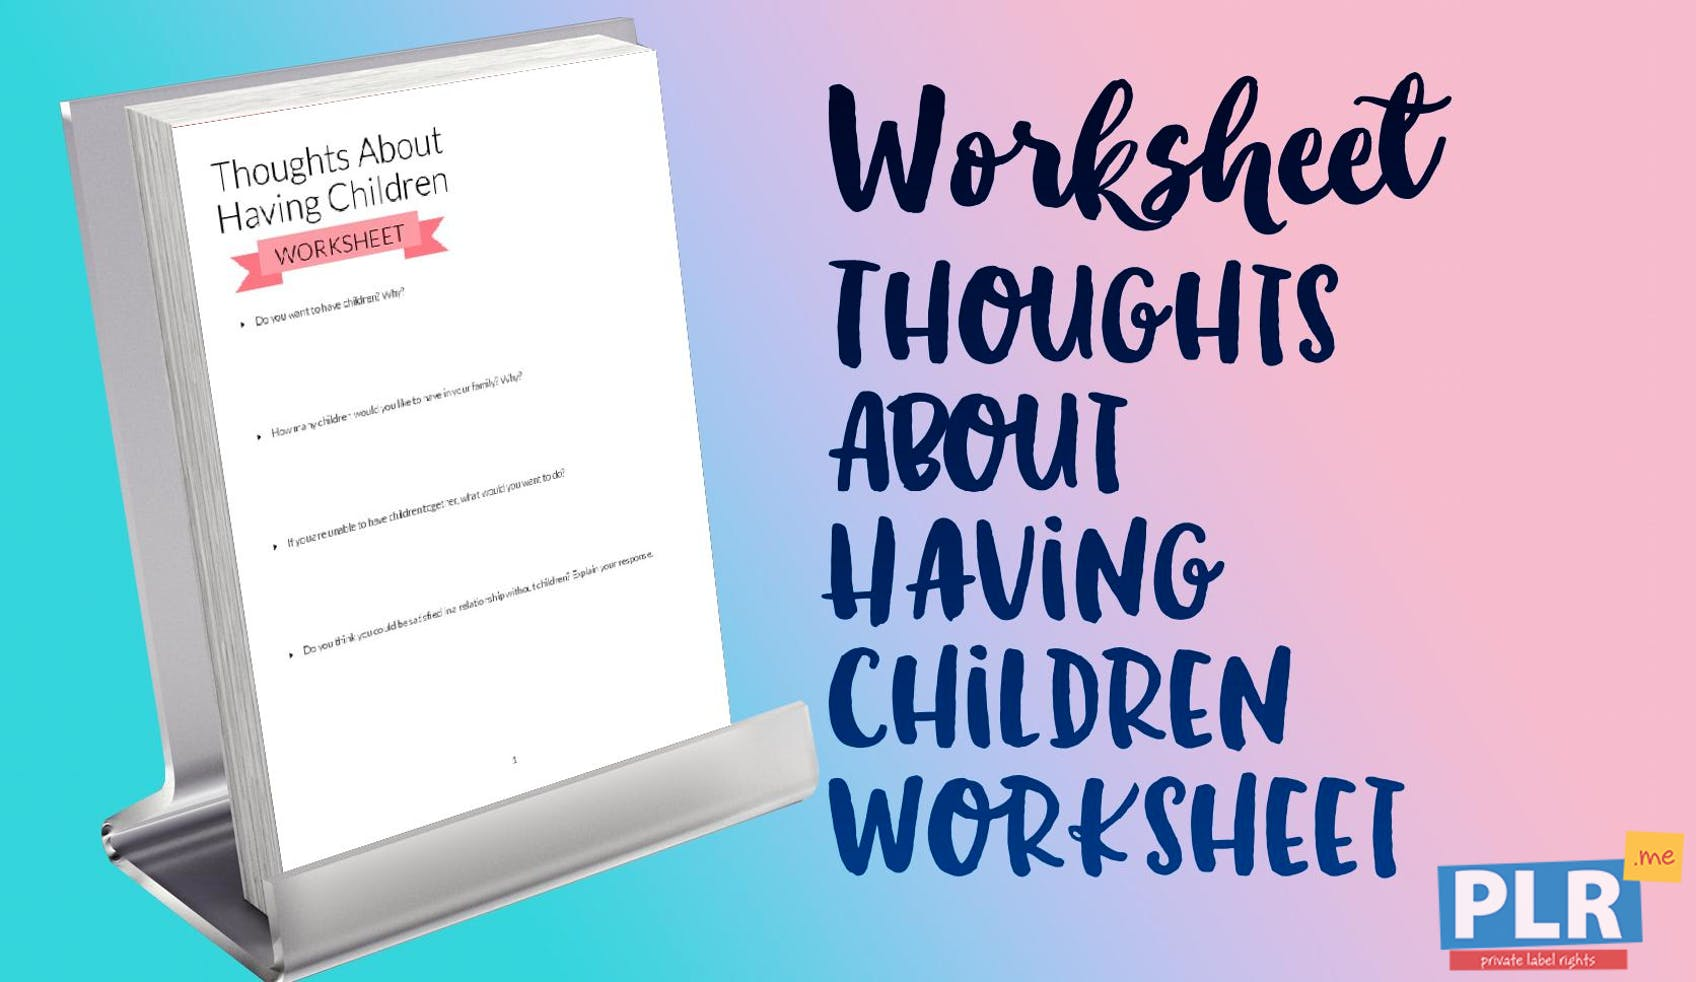 Thoughts About Having Children Worksheet